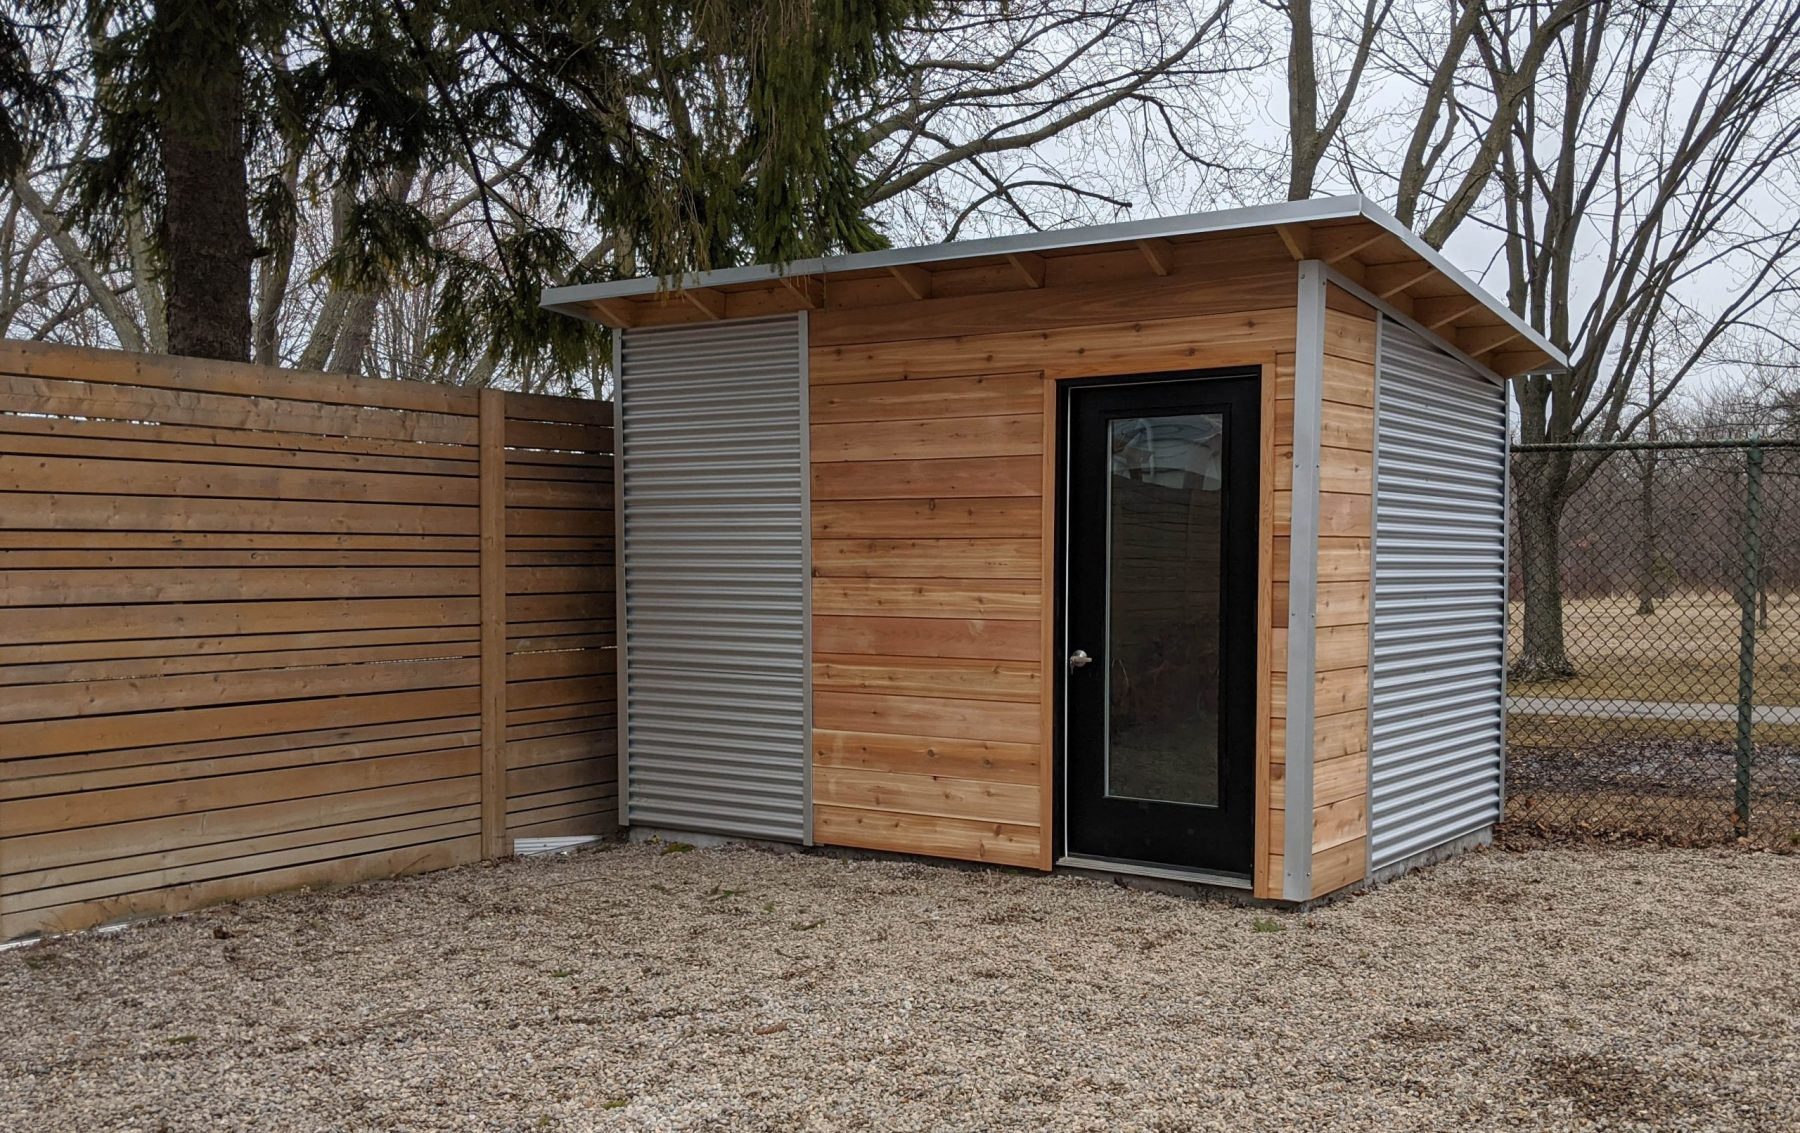 12' x 8' Custom Essential Shed with Natural Cedar Siding and Galvalume Steel